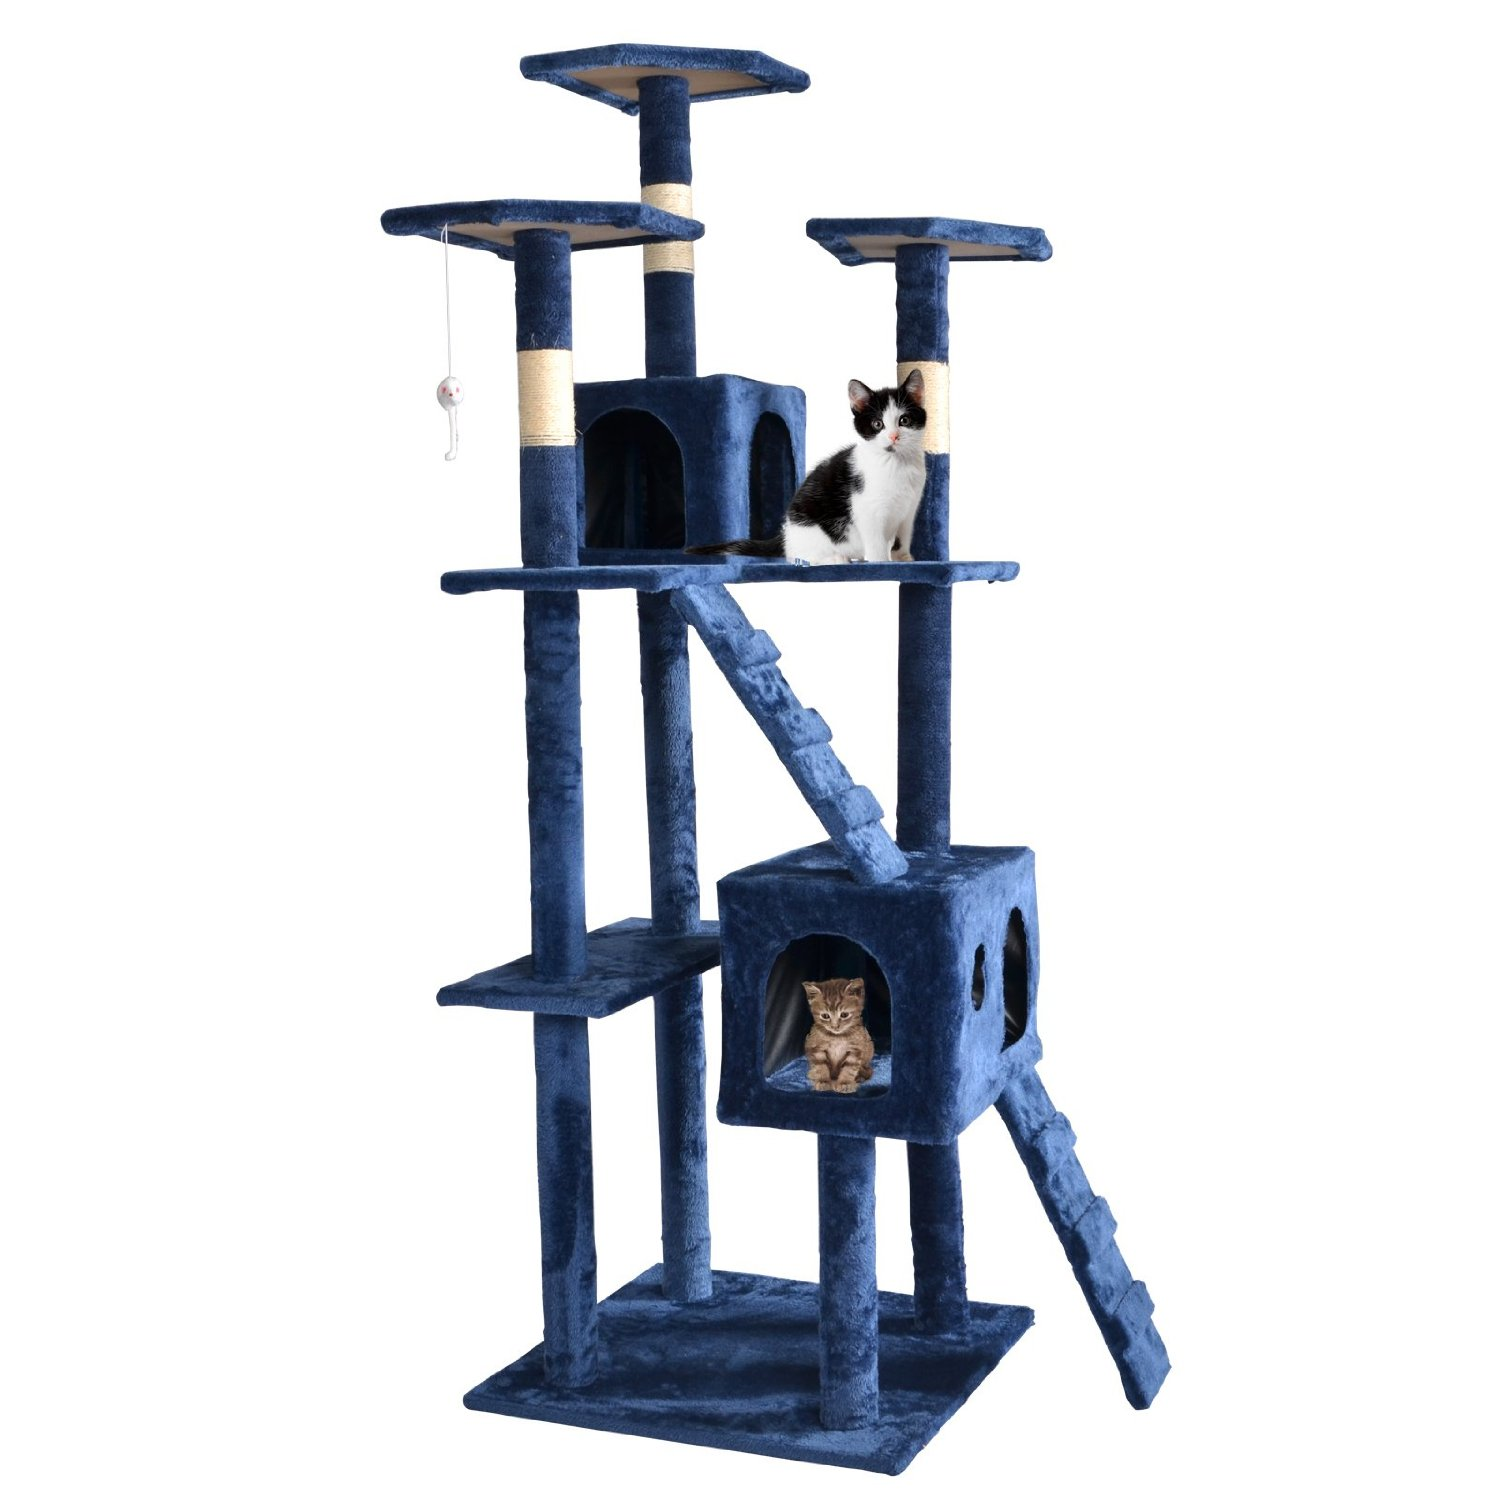 BestPet Large Wooden Cat Tree